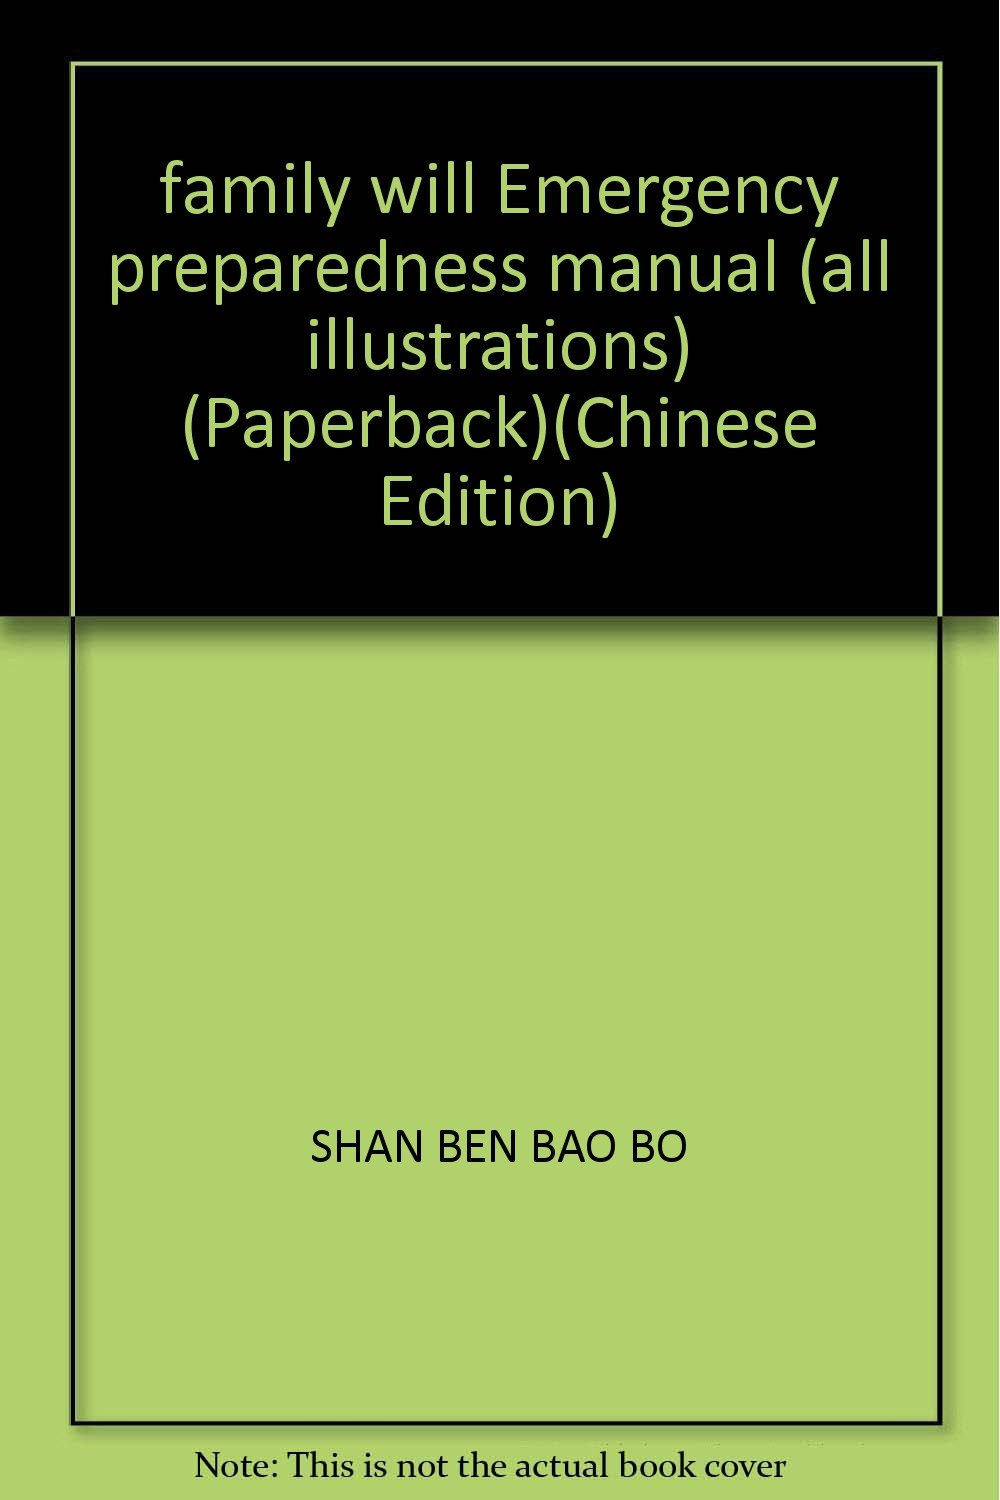 family will Emergency preparedness manual (all illustrations) (Paperback)(Chinese Edition) ebook